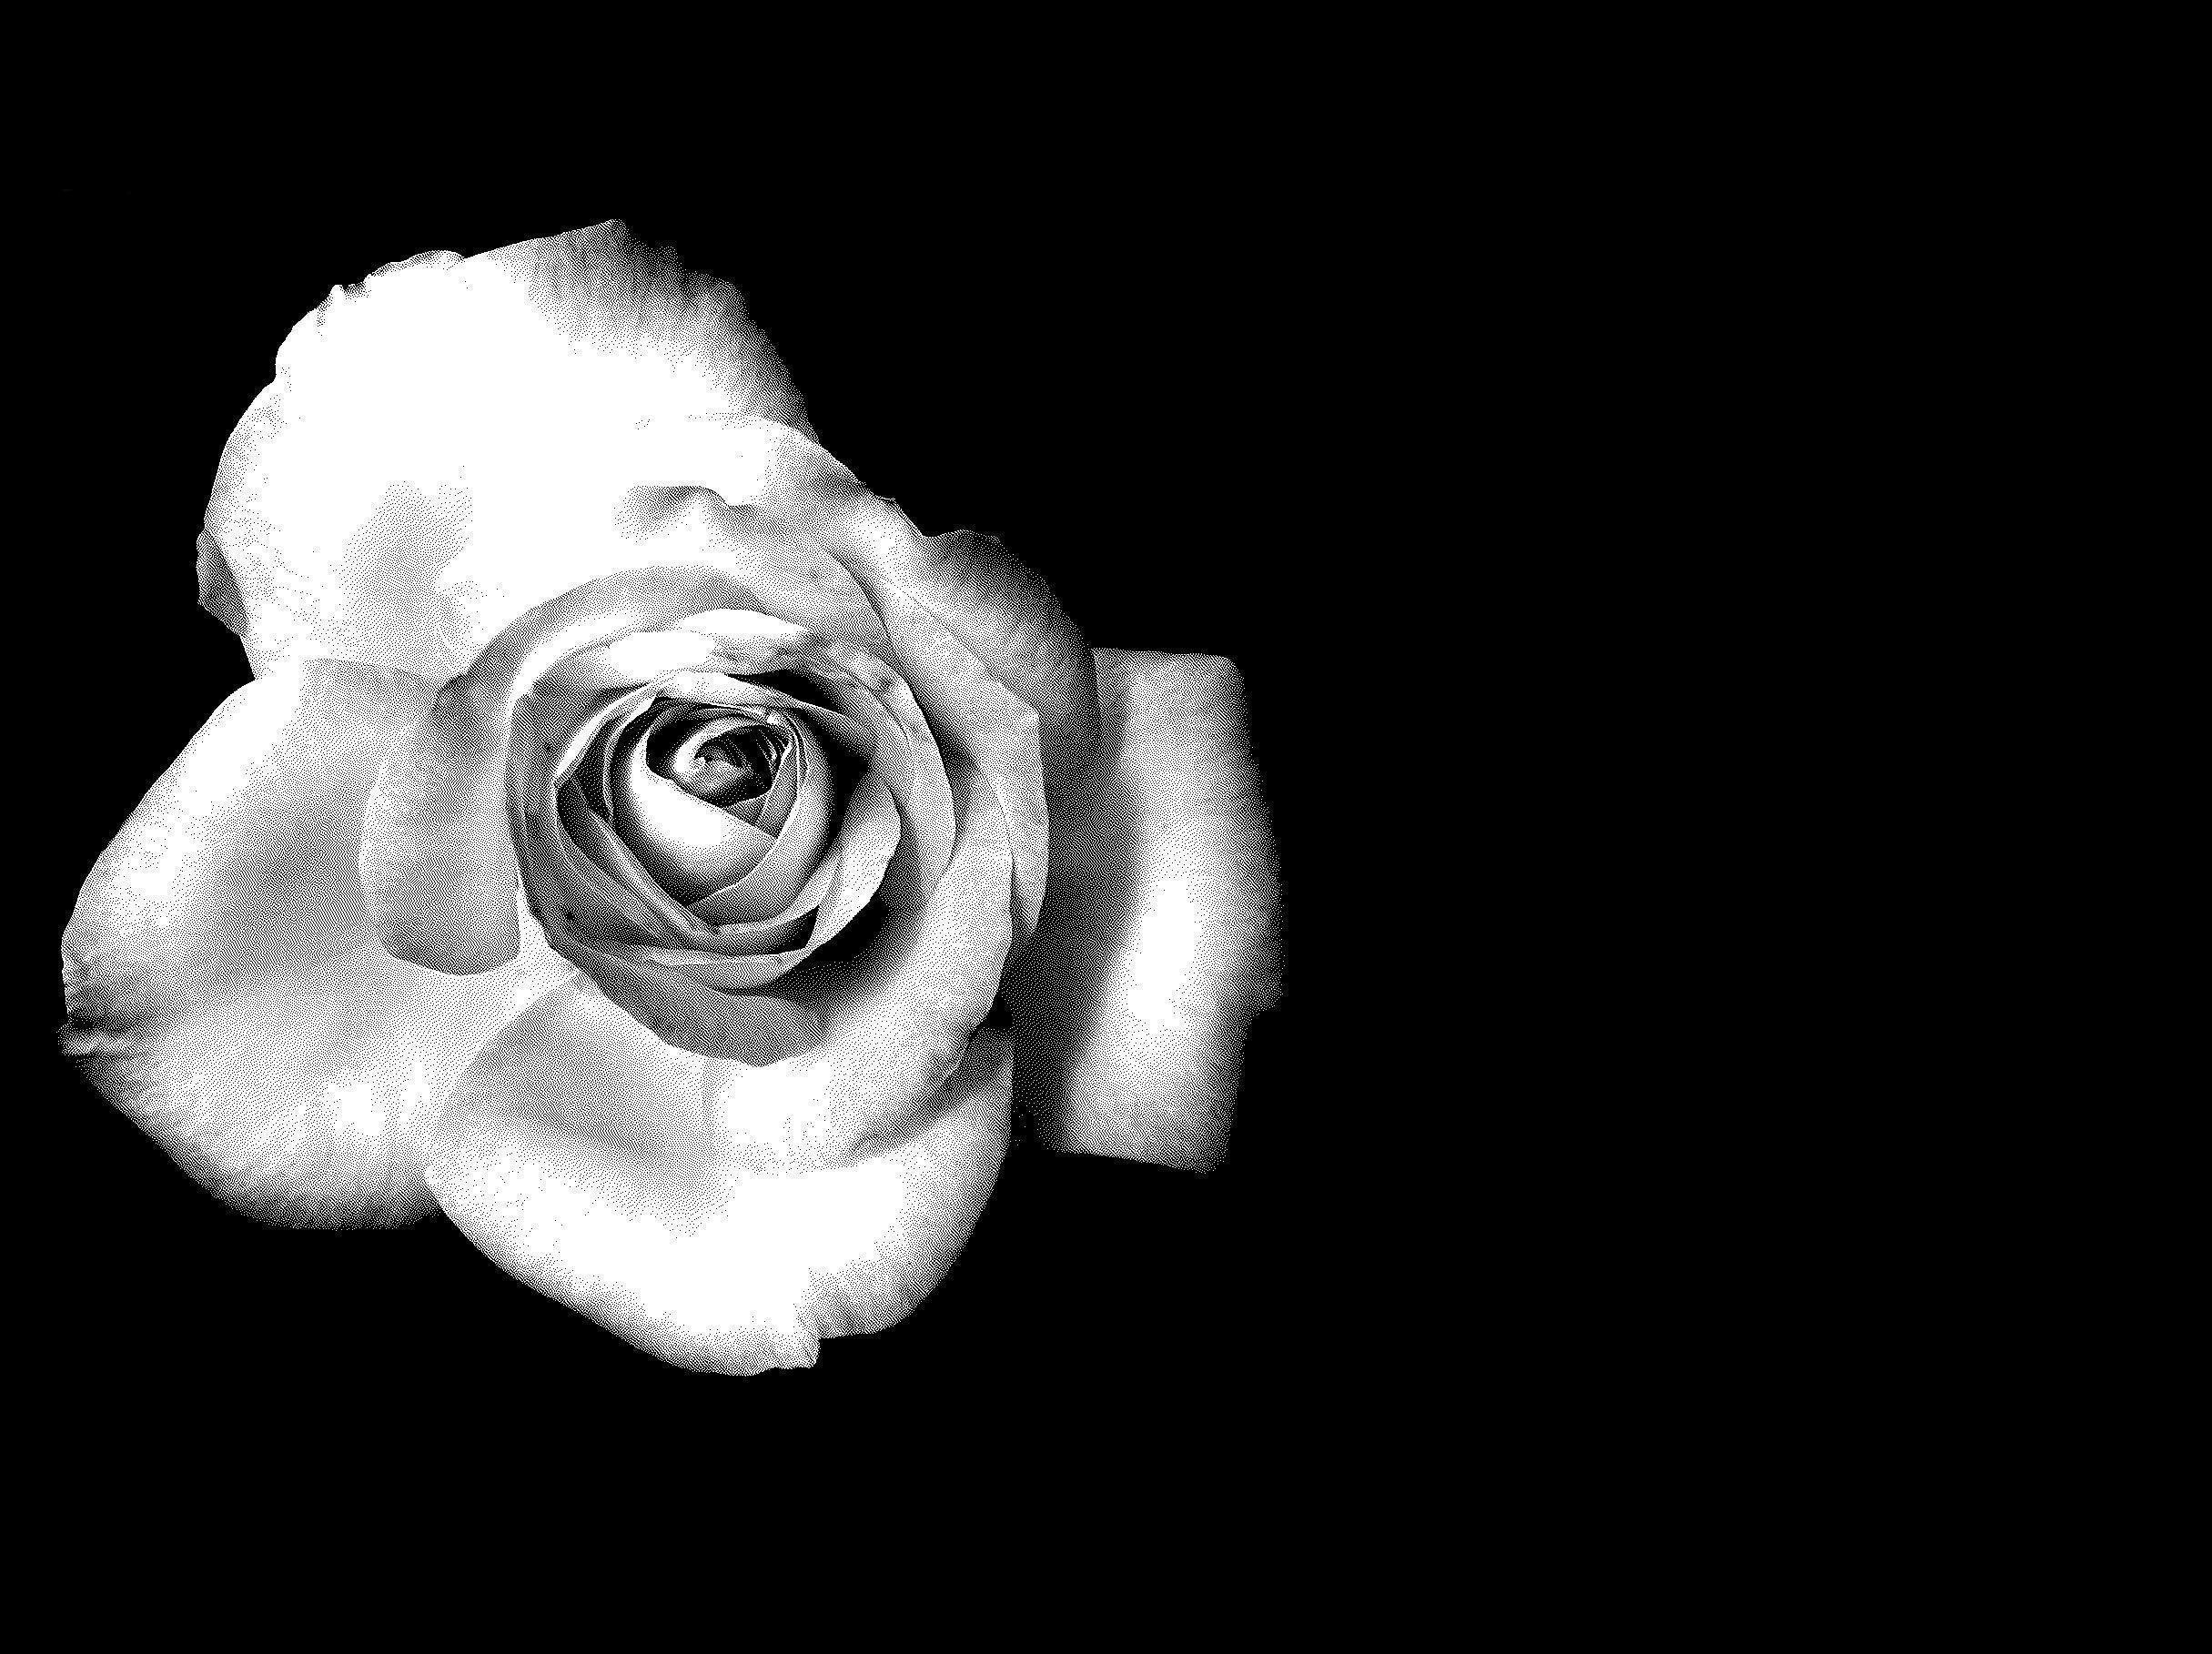 Black and white rose wallpapers wallpaper cave - Black n white designs ...